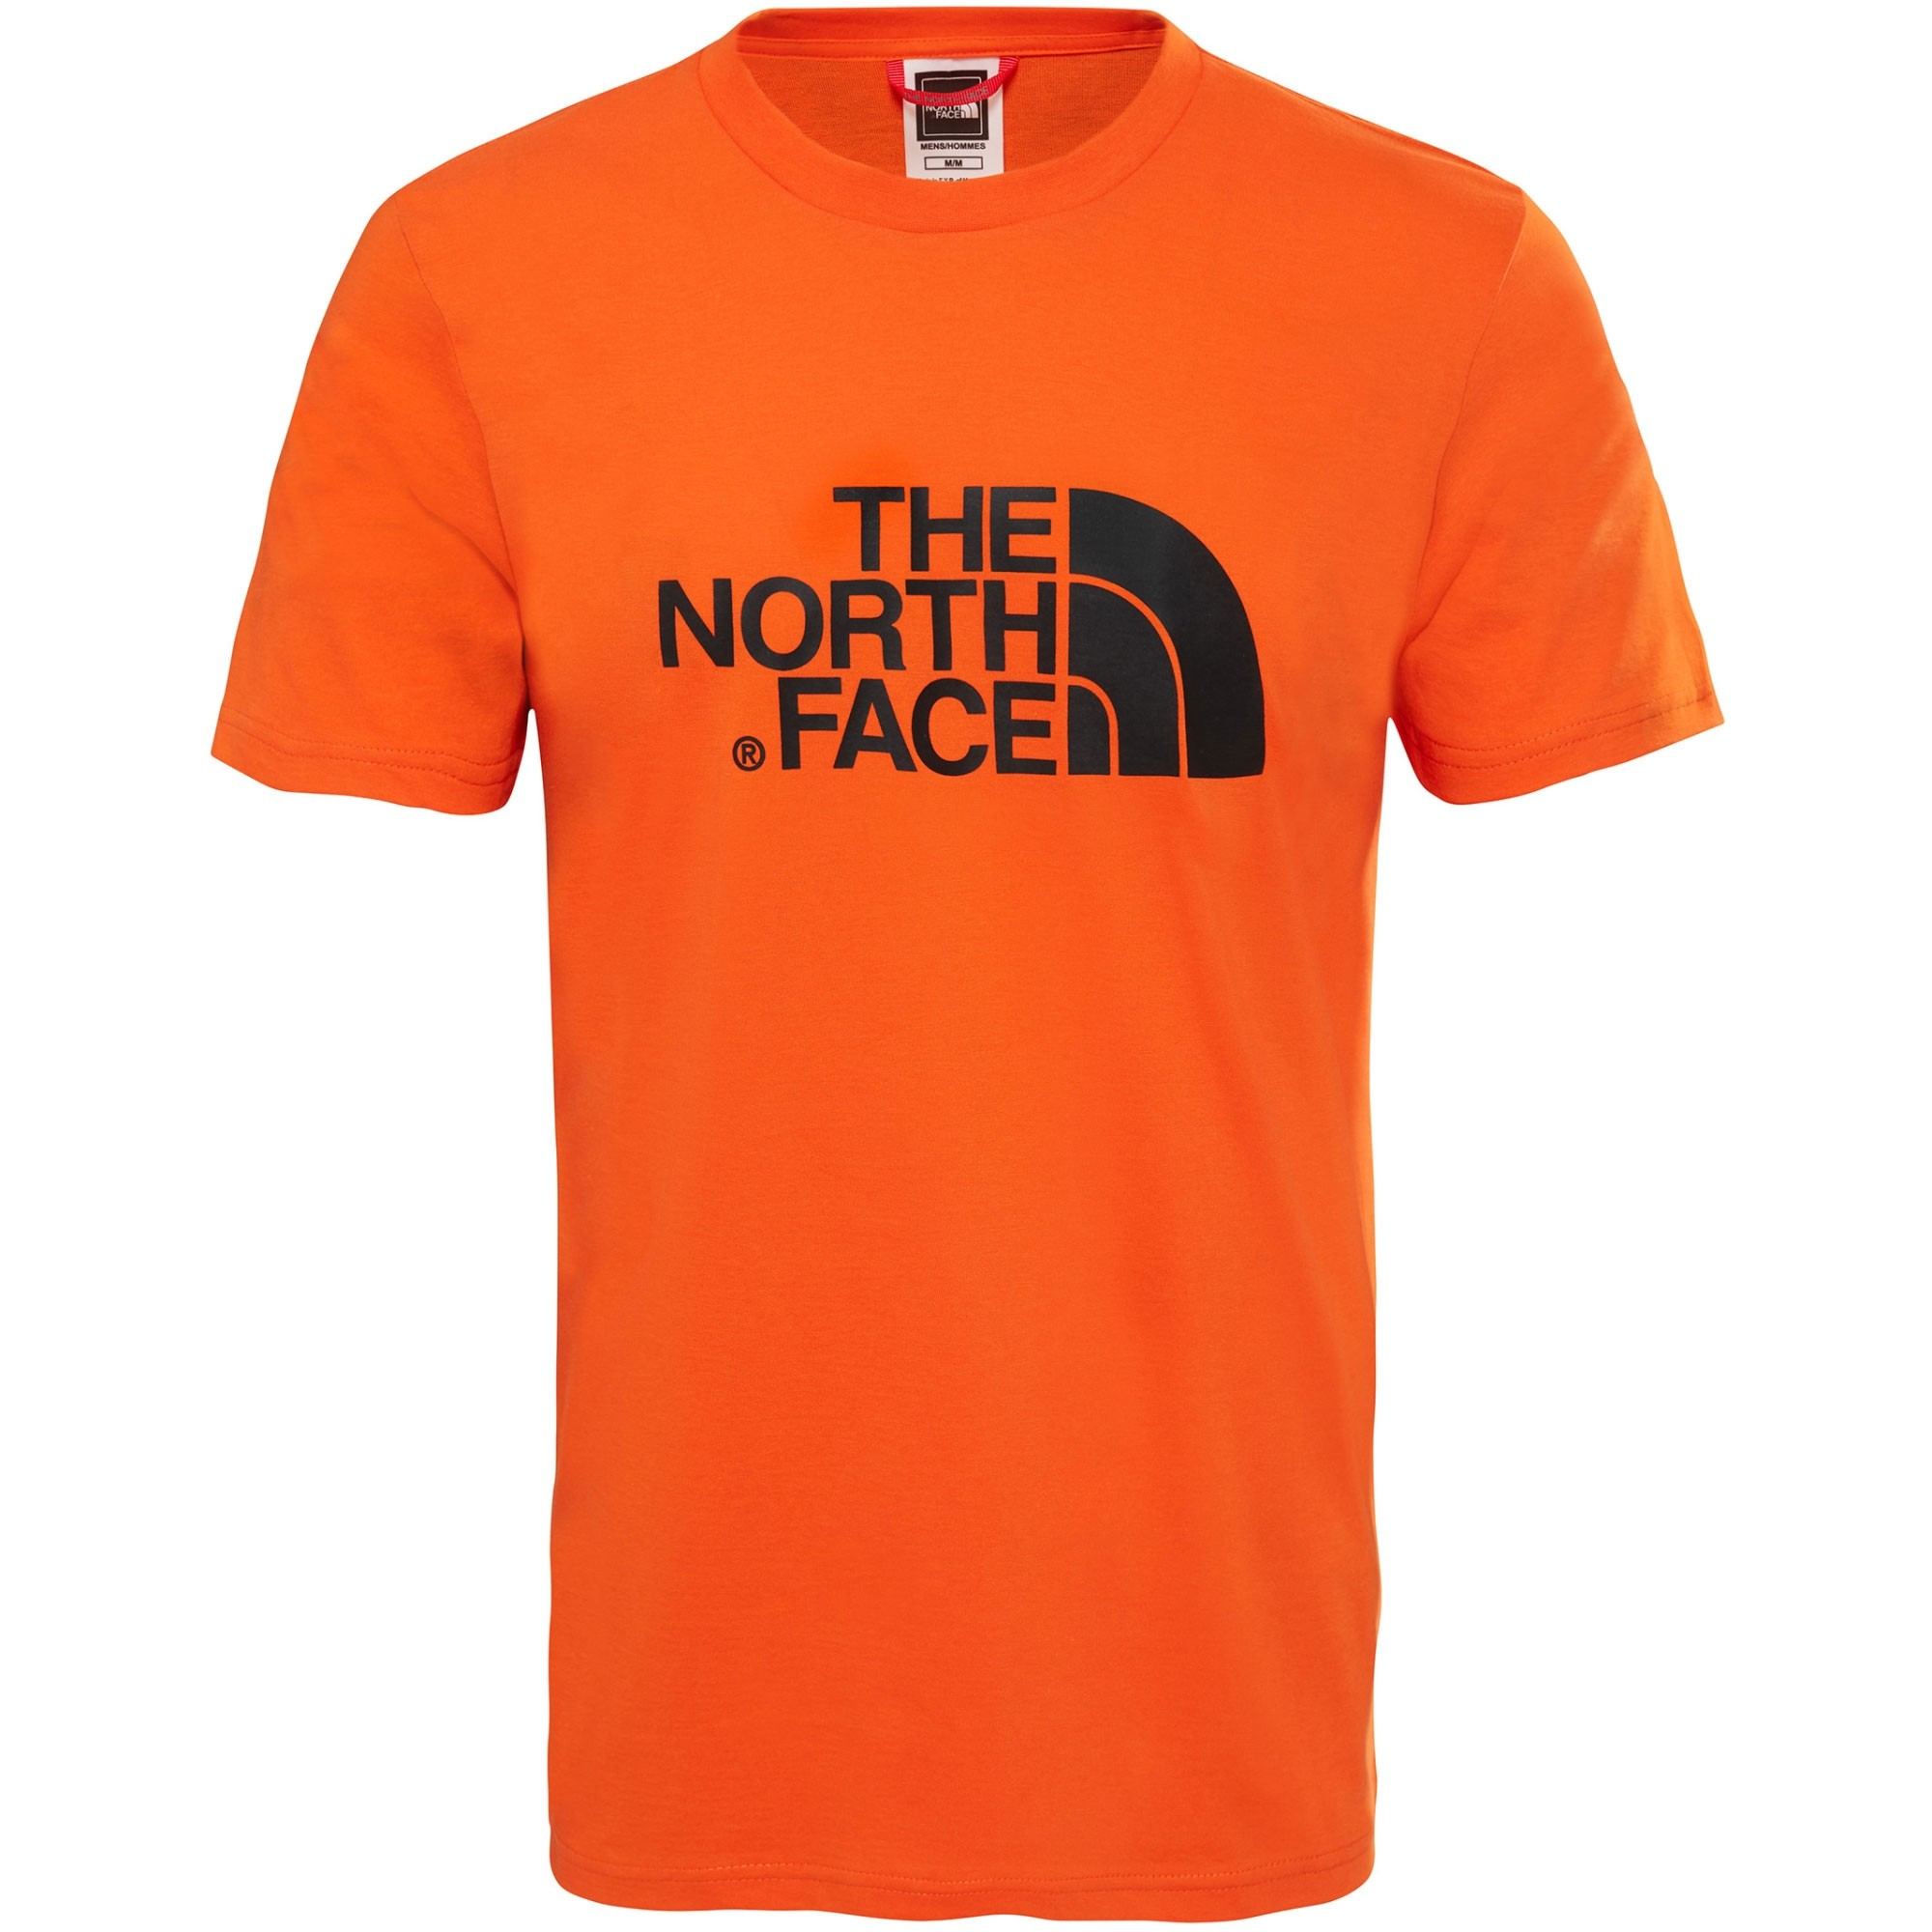 The North Face Short Sleeved Easy Tee - Persian Orange